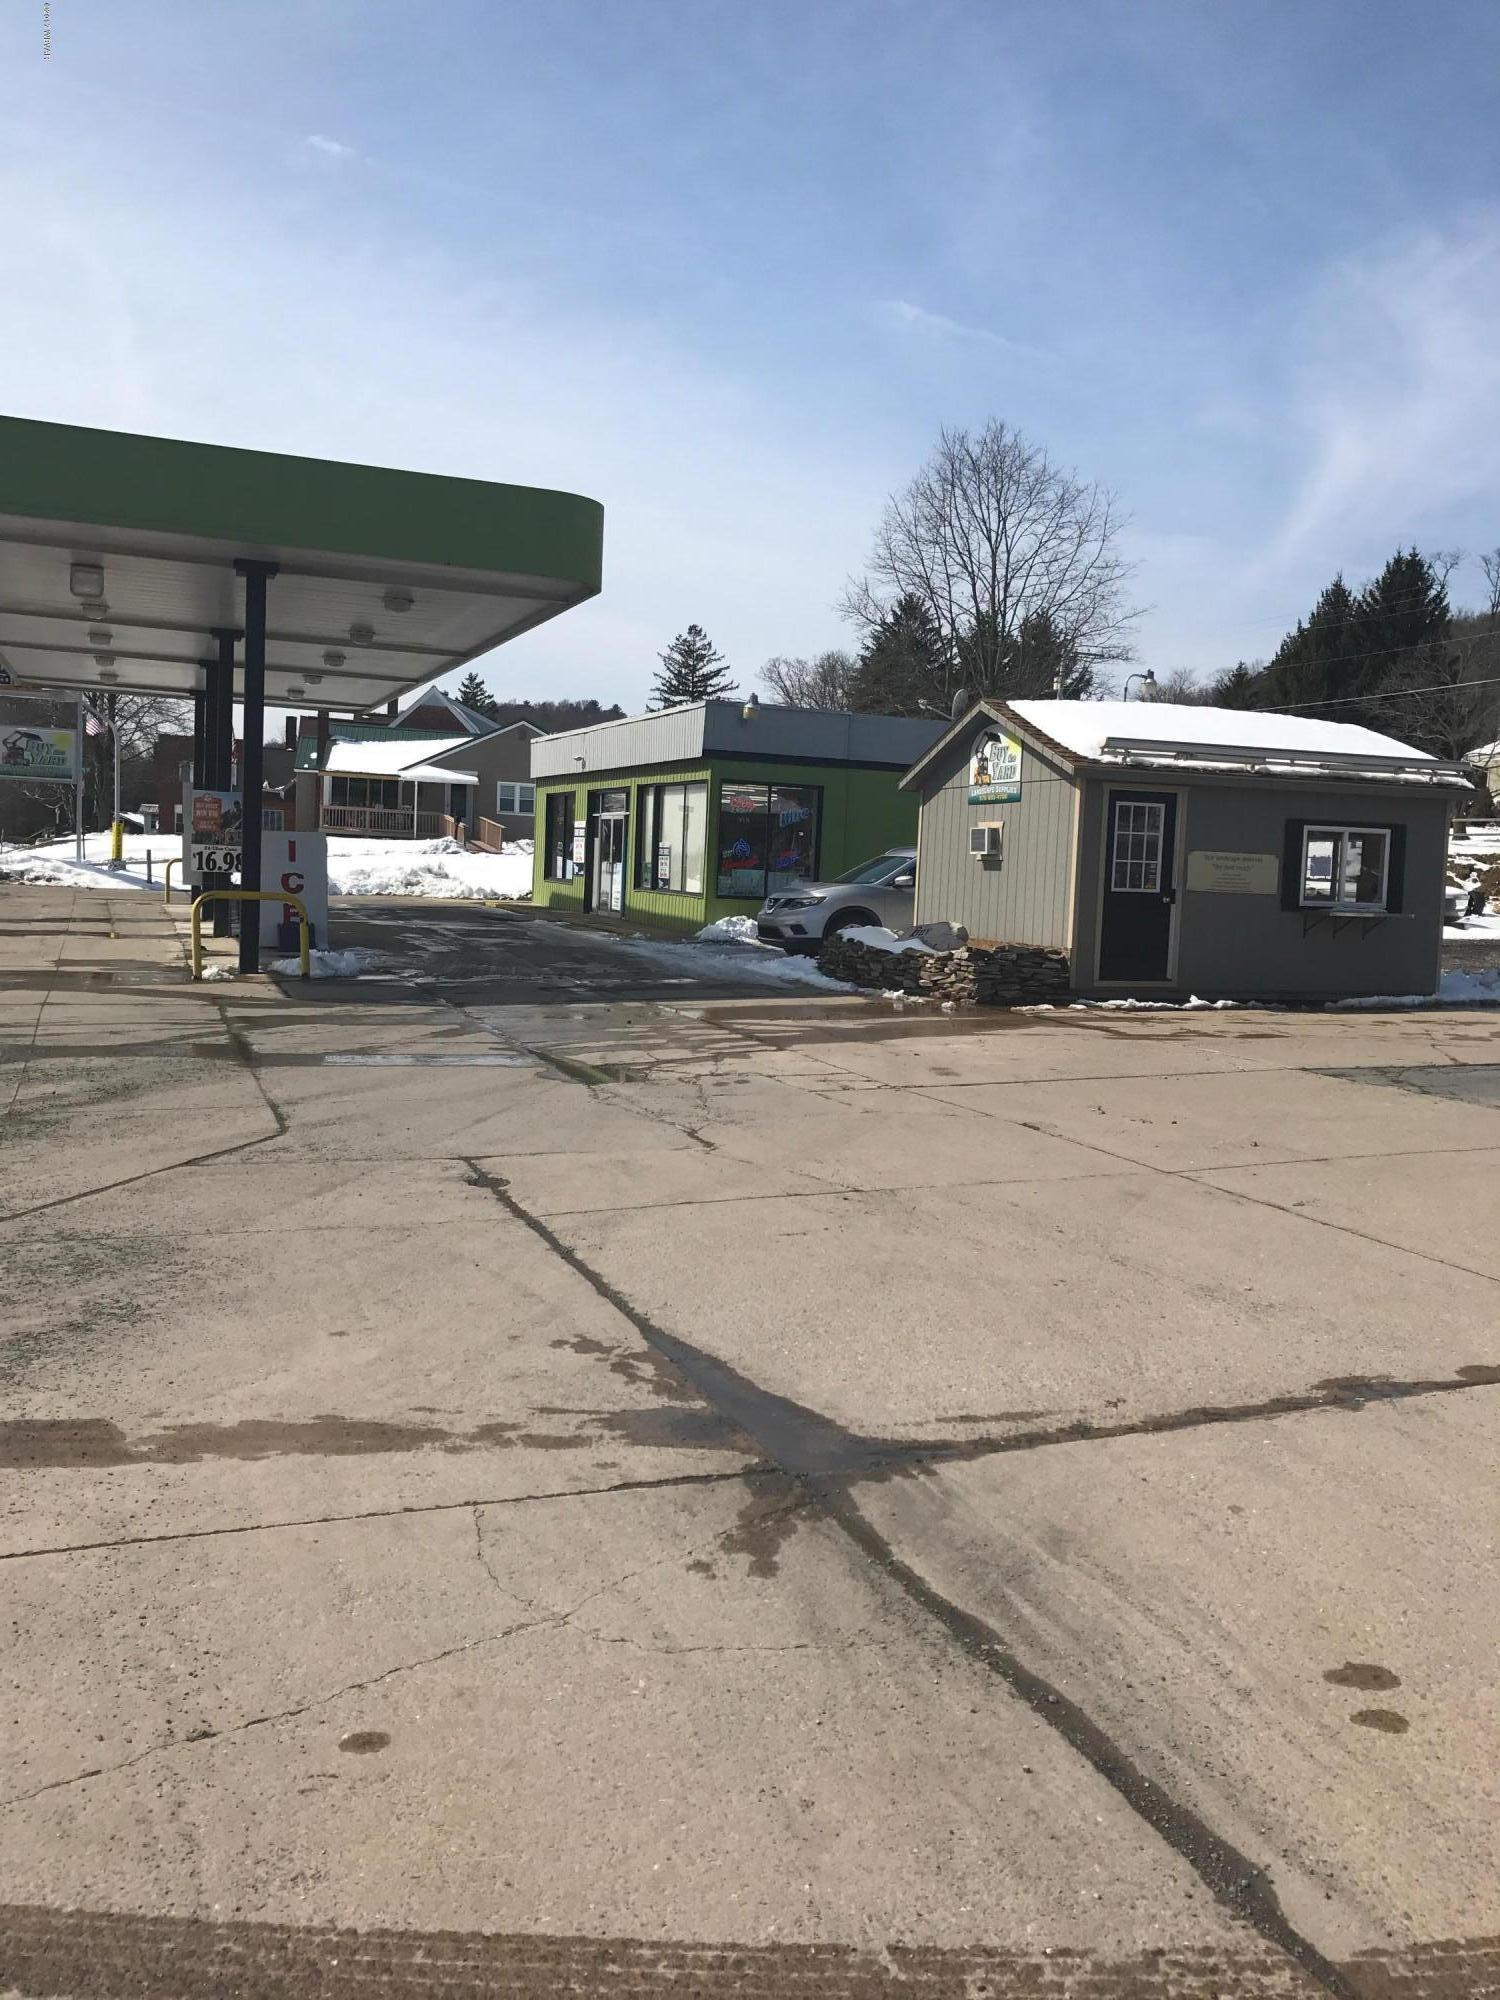 216 WOODWARD AVENUE, Lock Haven, PA 17745, ,2 BathroomsBathrooms,Commercial sales,For sale,WOODWARD,WB-80161